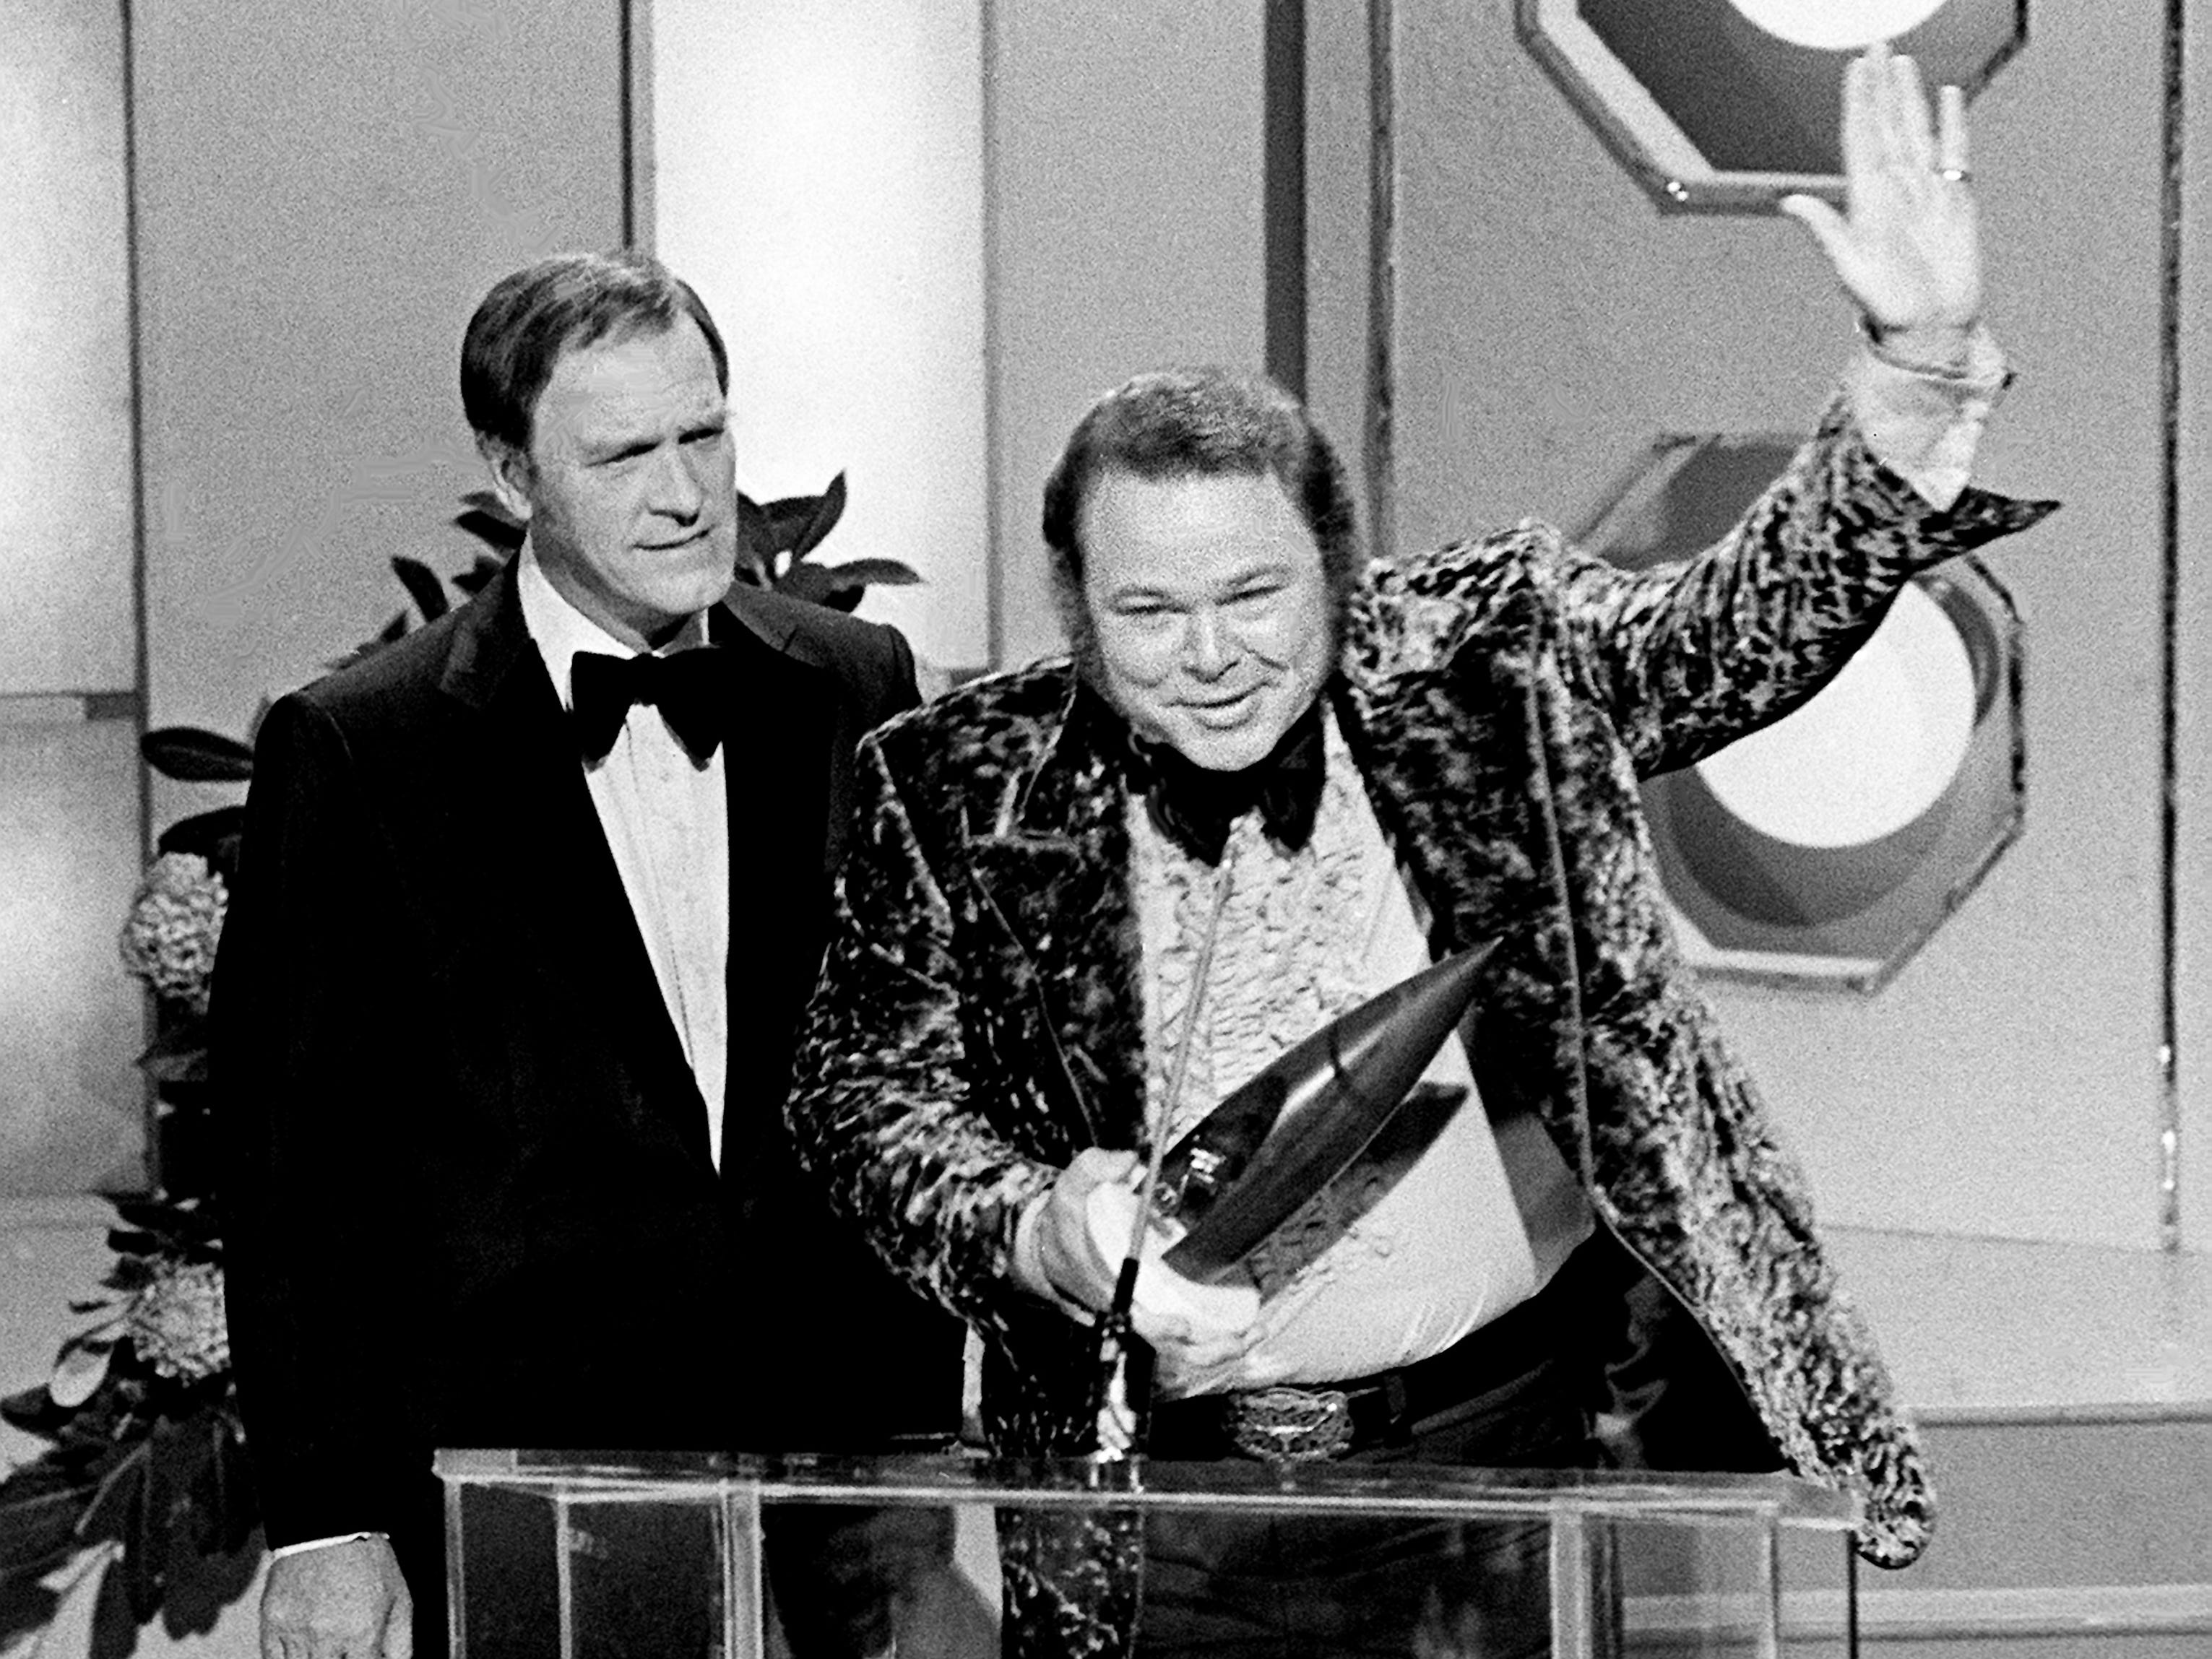 Roy Clark, right, accepts the coveted Entertainer of the Year award at the seventh annual CMA Awards show at the Grand Ole Opry House on Oct. 15, 1973. Looking on is presenter Eddy Arnold.